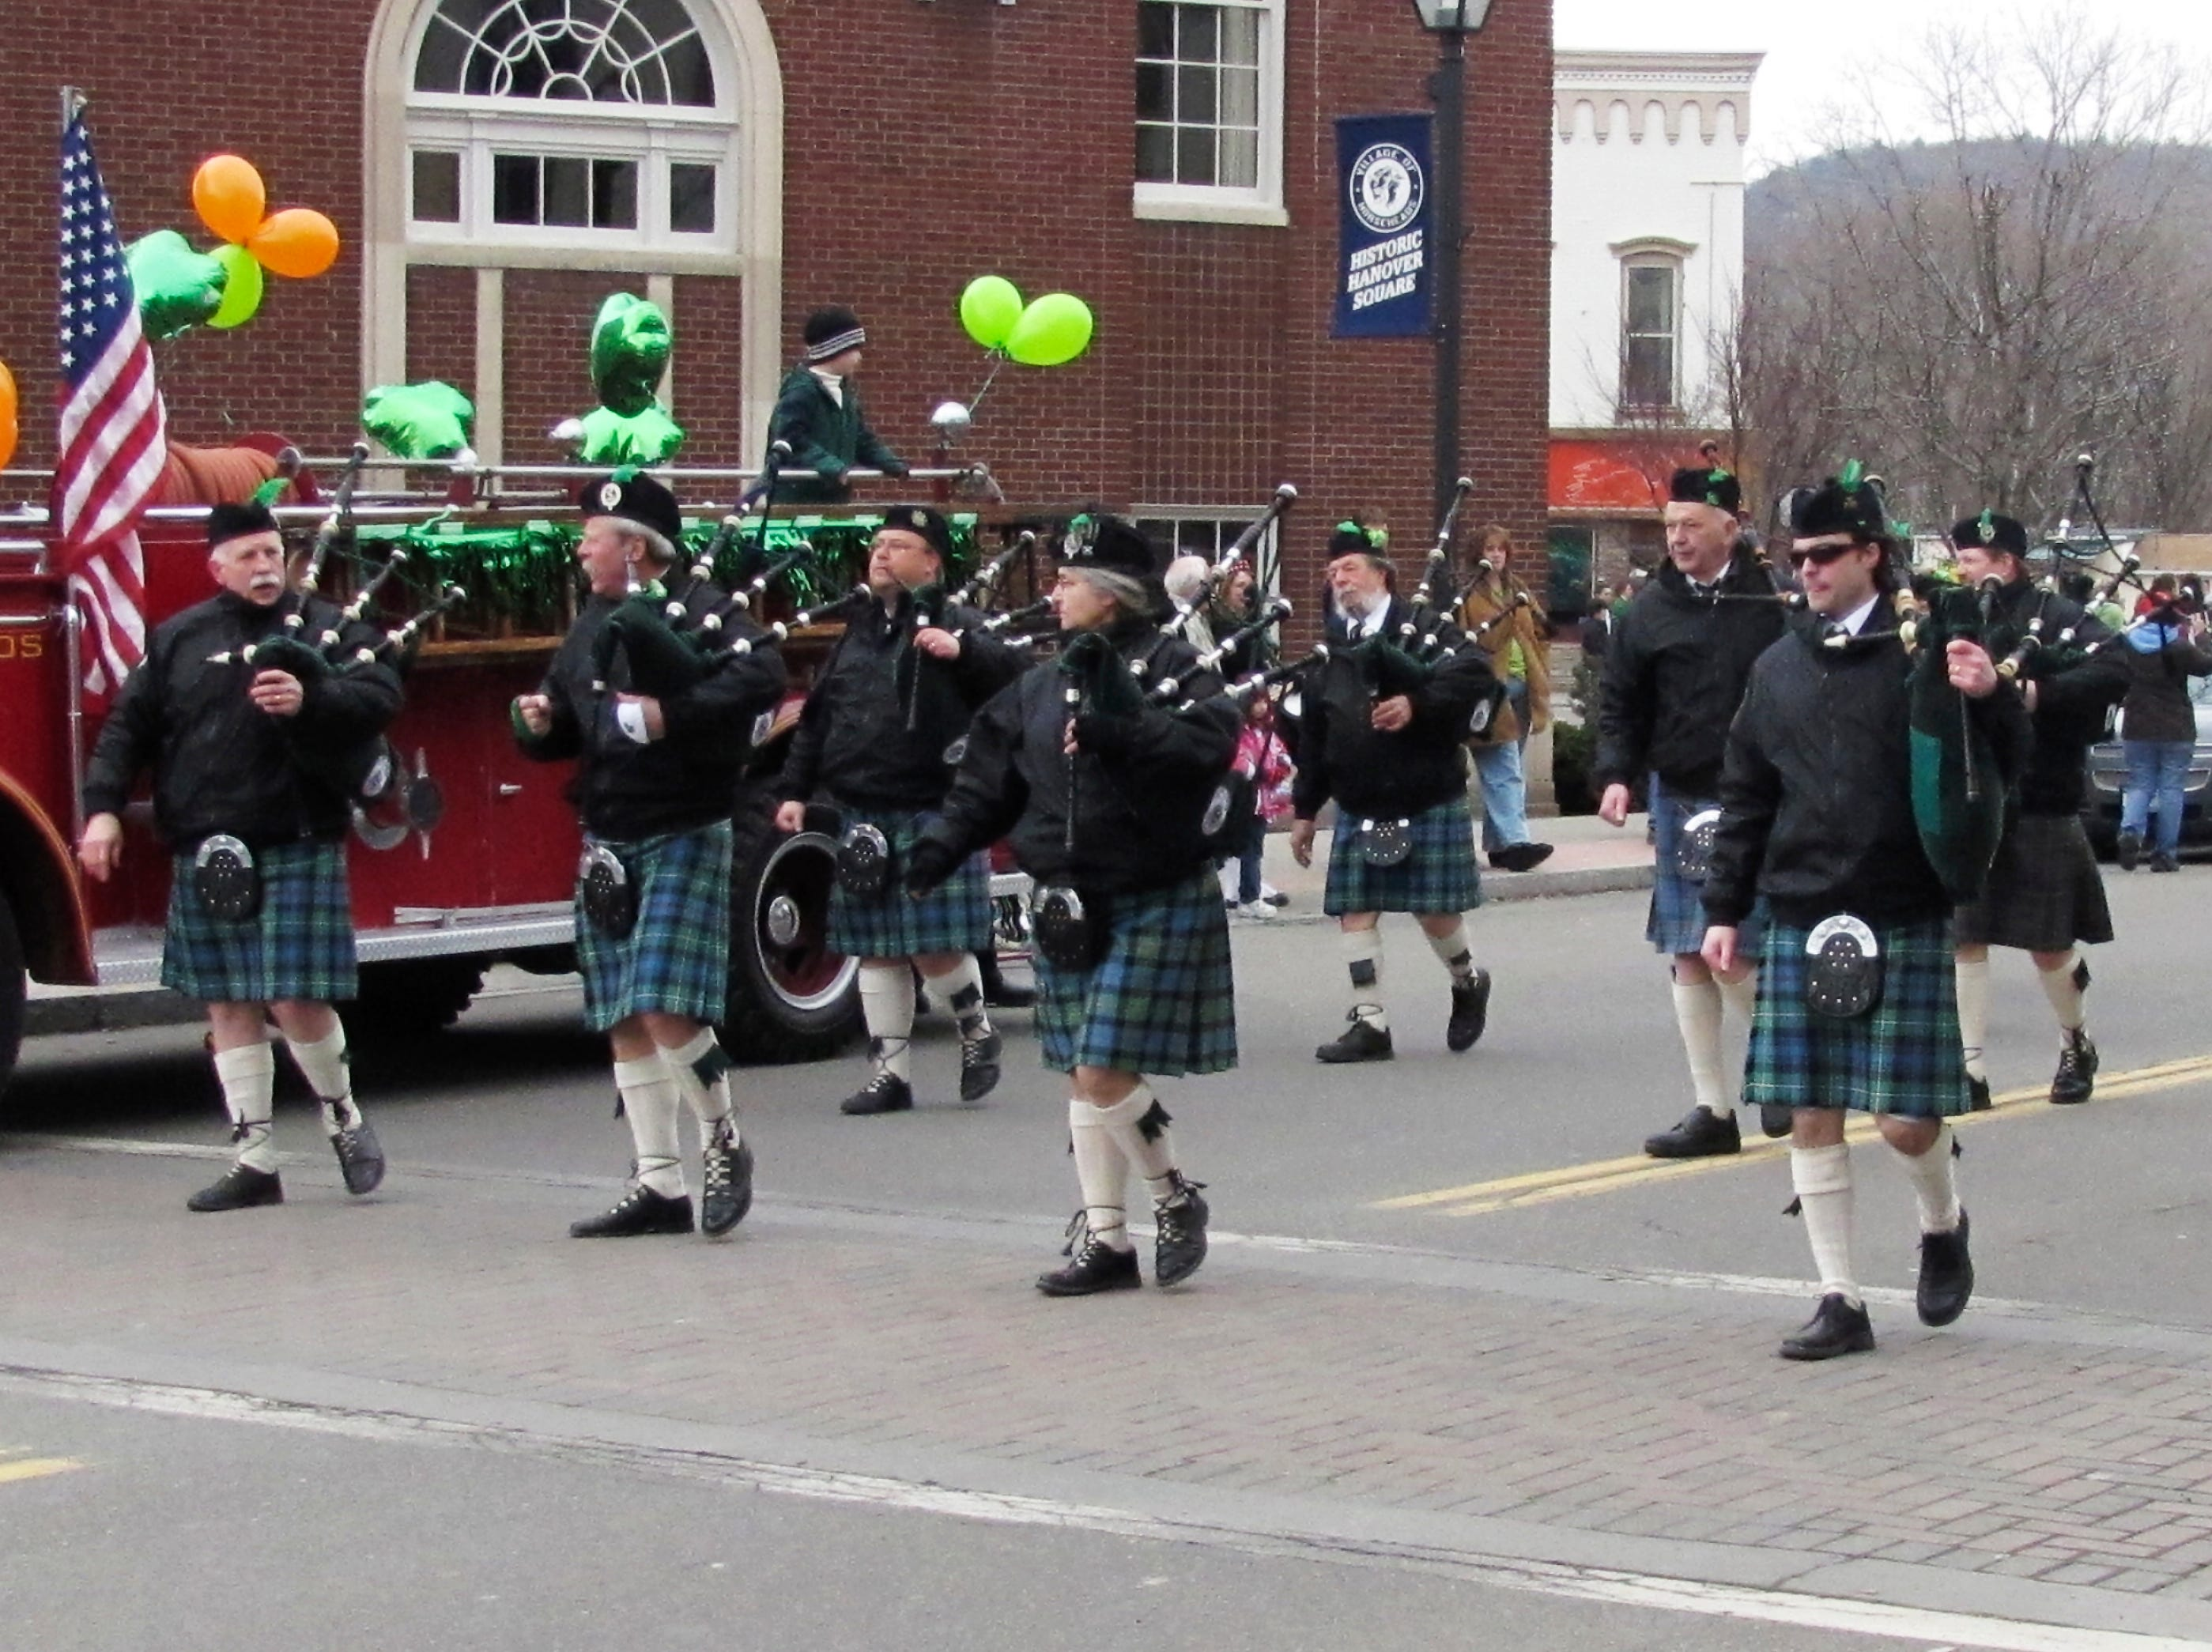 2011: Members of the Finger Lakes Pipe Band march through Hanover Square in Horseheads on Sunday during the annual St. Patrick's Day parade.